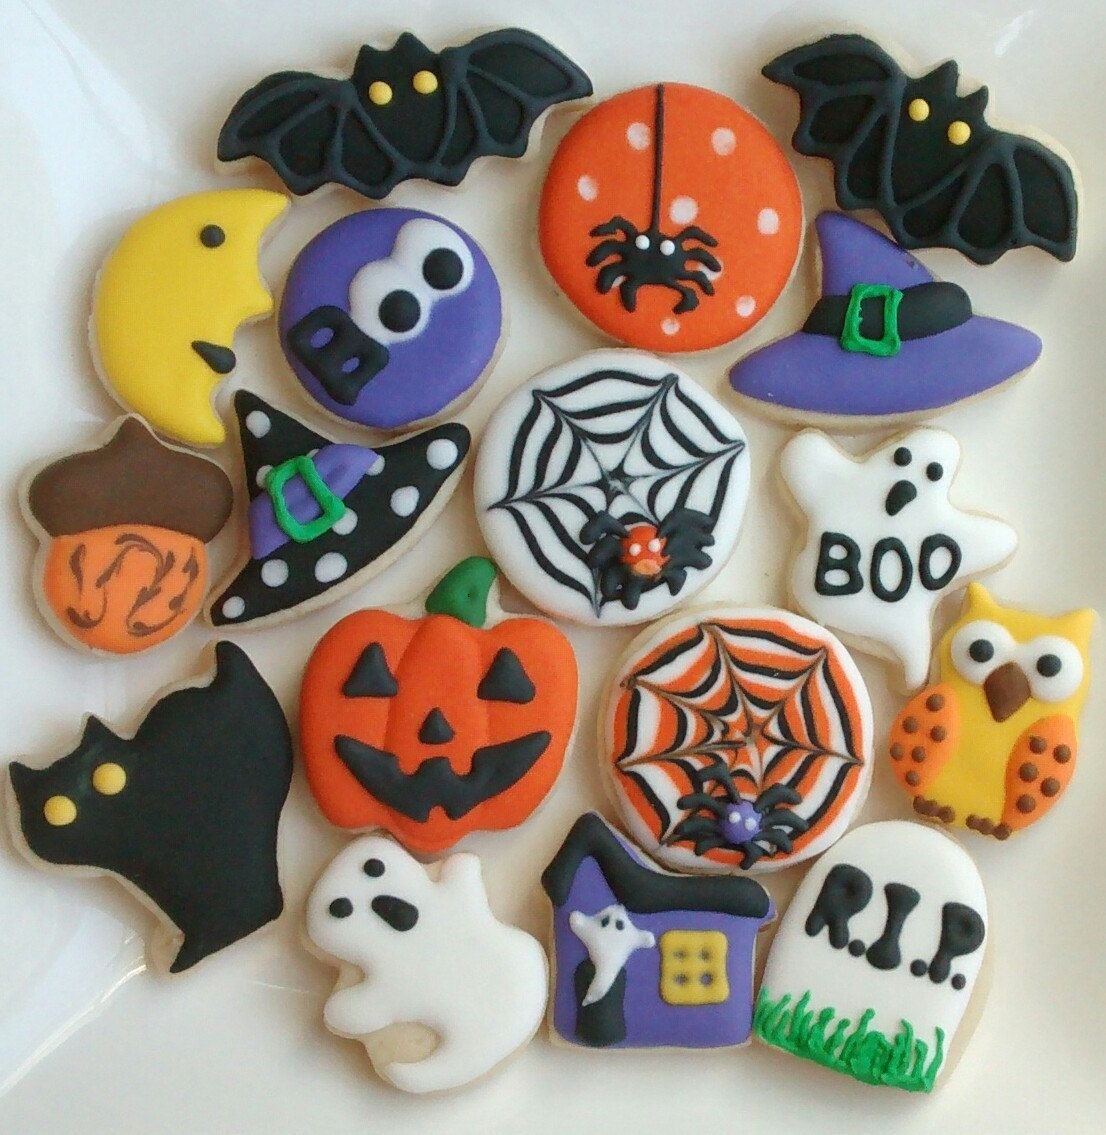 Owl Decorated Cookies Halloween Sugar Cookies Mini Or Large Decorated With Royal Icing